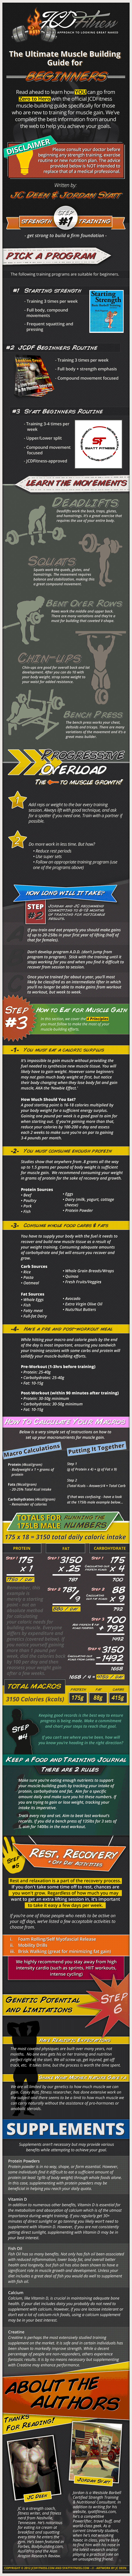 Ultimate-Muscle-Building-Guide-infographic